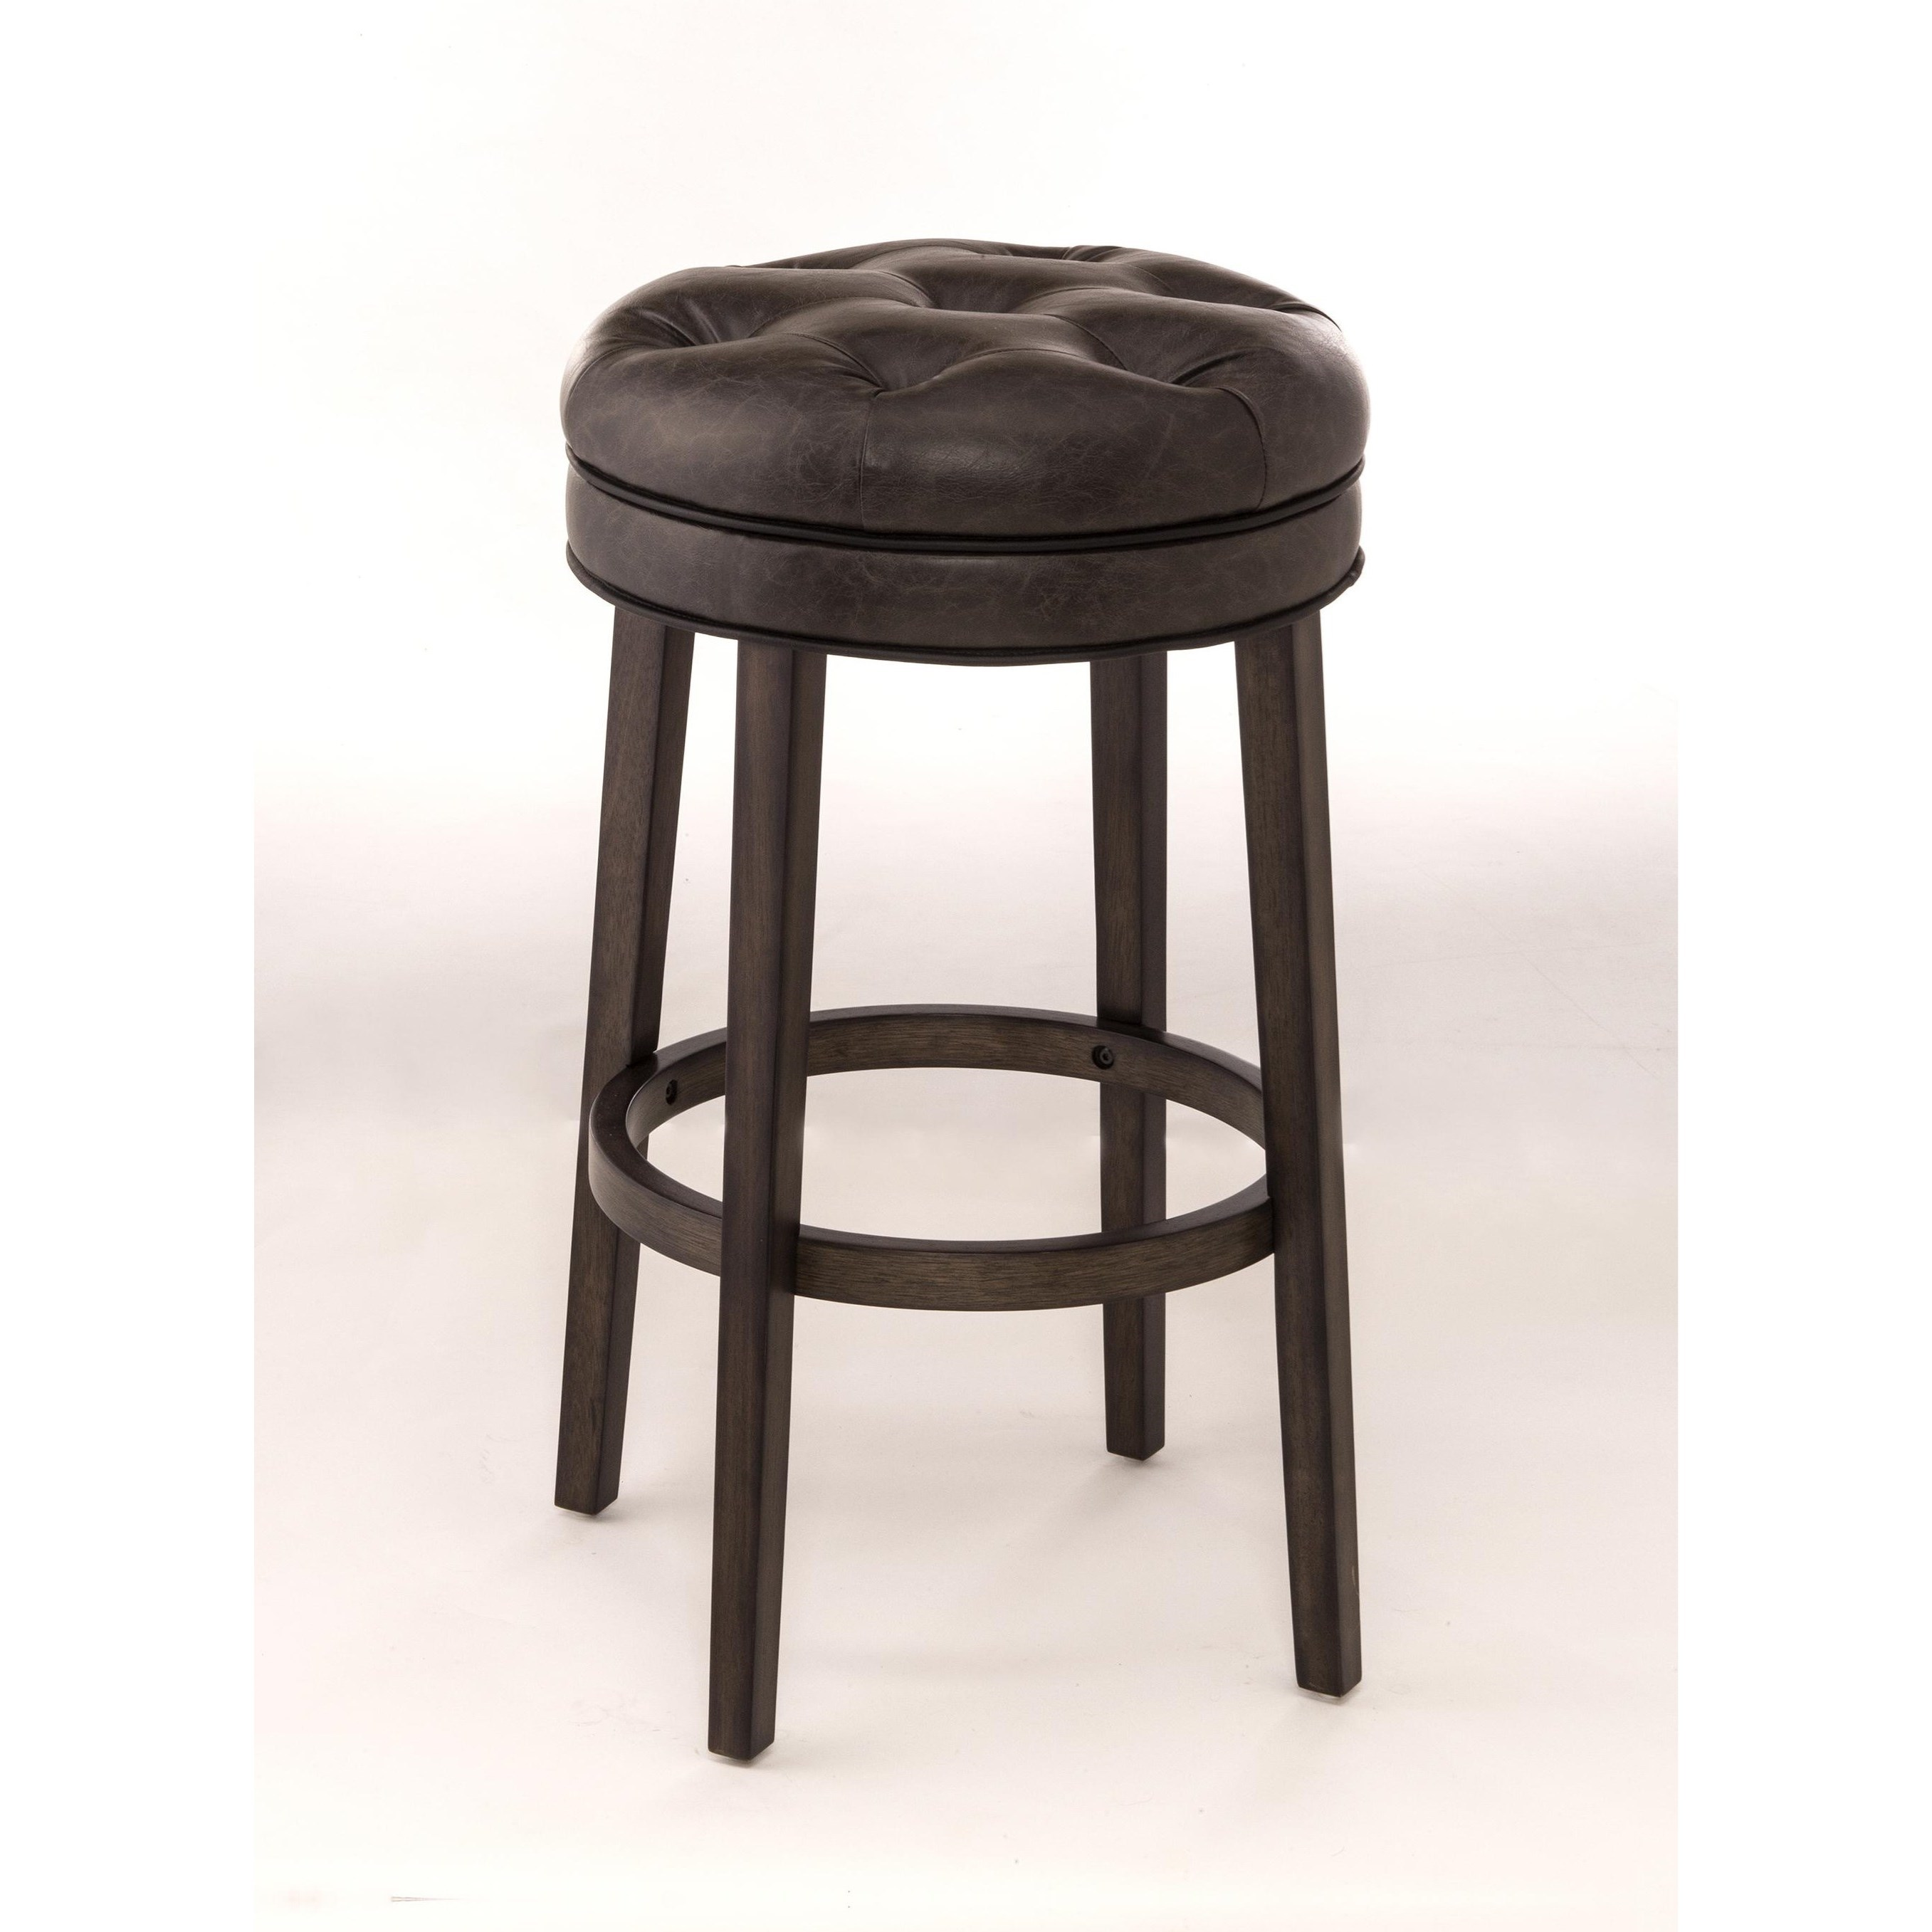 Awe Inspiring Hillsdale Backless Bar Stools Backless Swivel Bar Stool With Caraccident5 Cool Chair Designs And Ideas Caraccident5Info